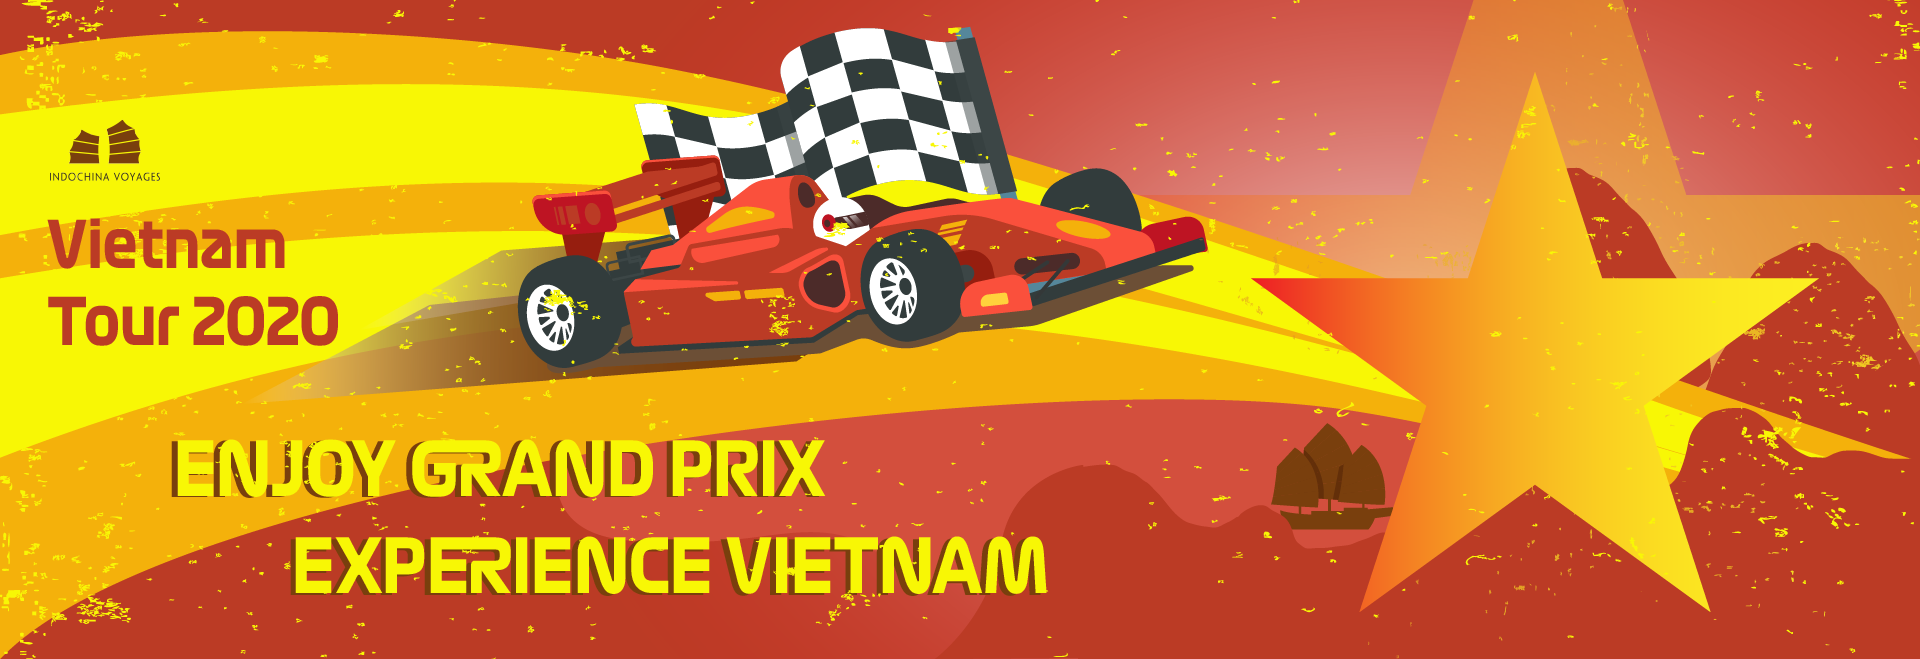 Best travel experiences with Vietnam tours before/after Vietnam Grand Prix